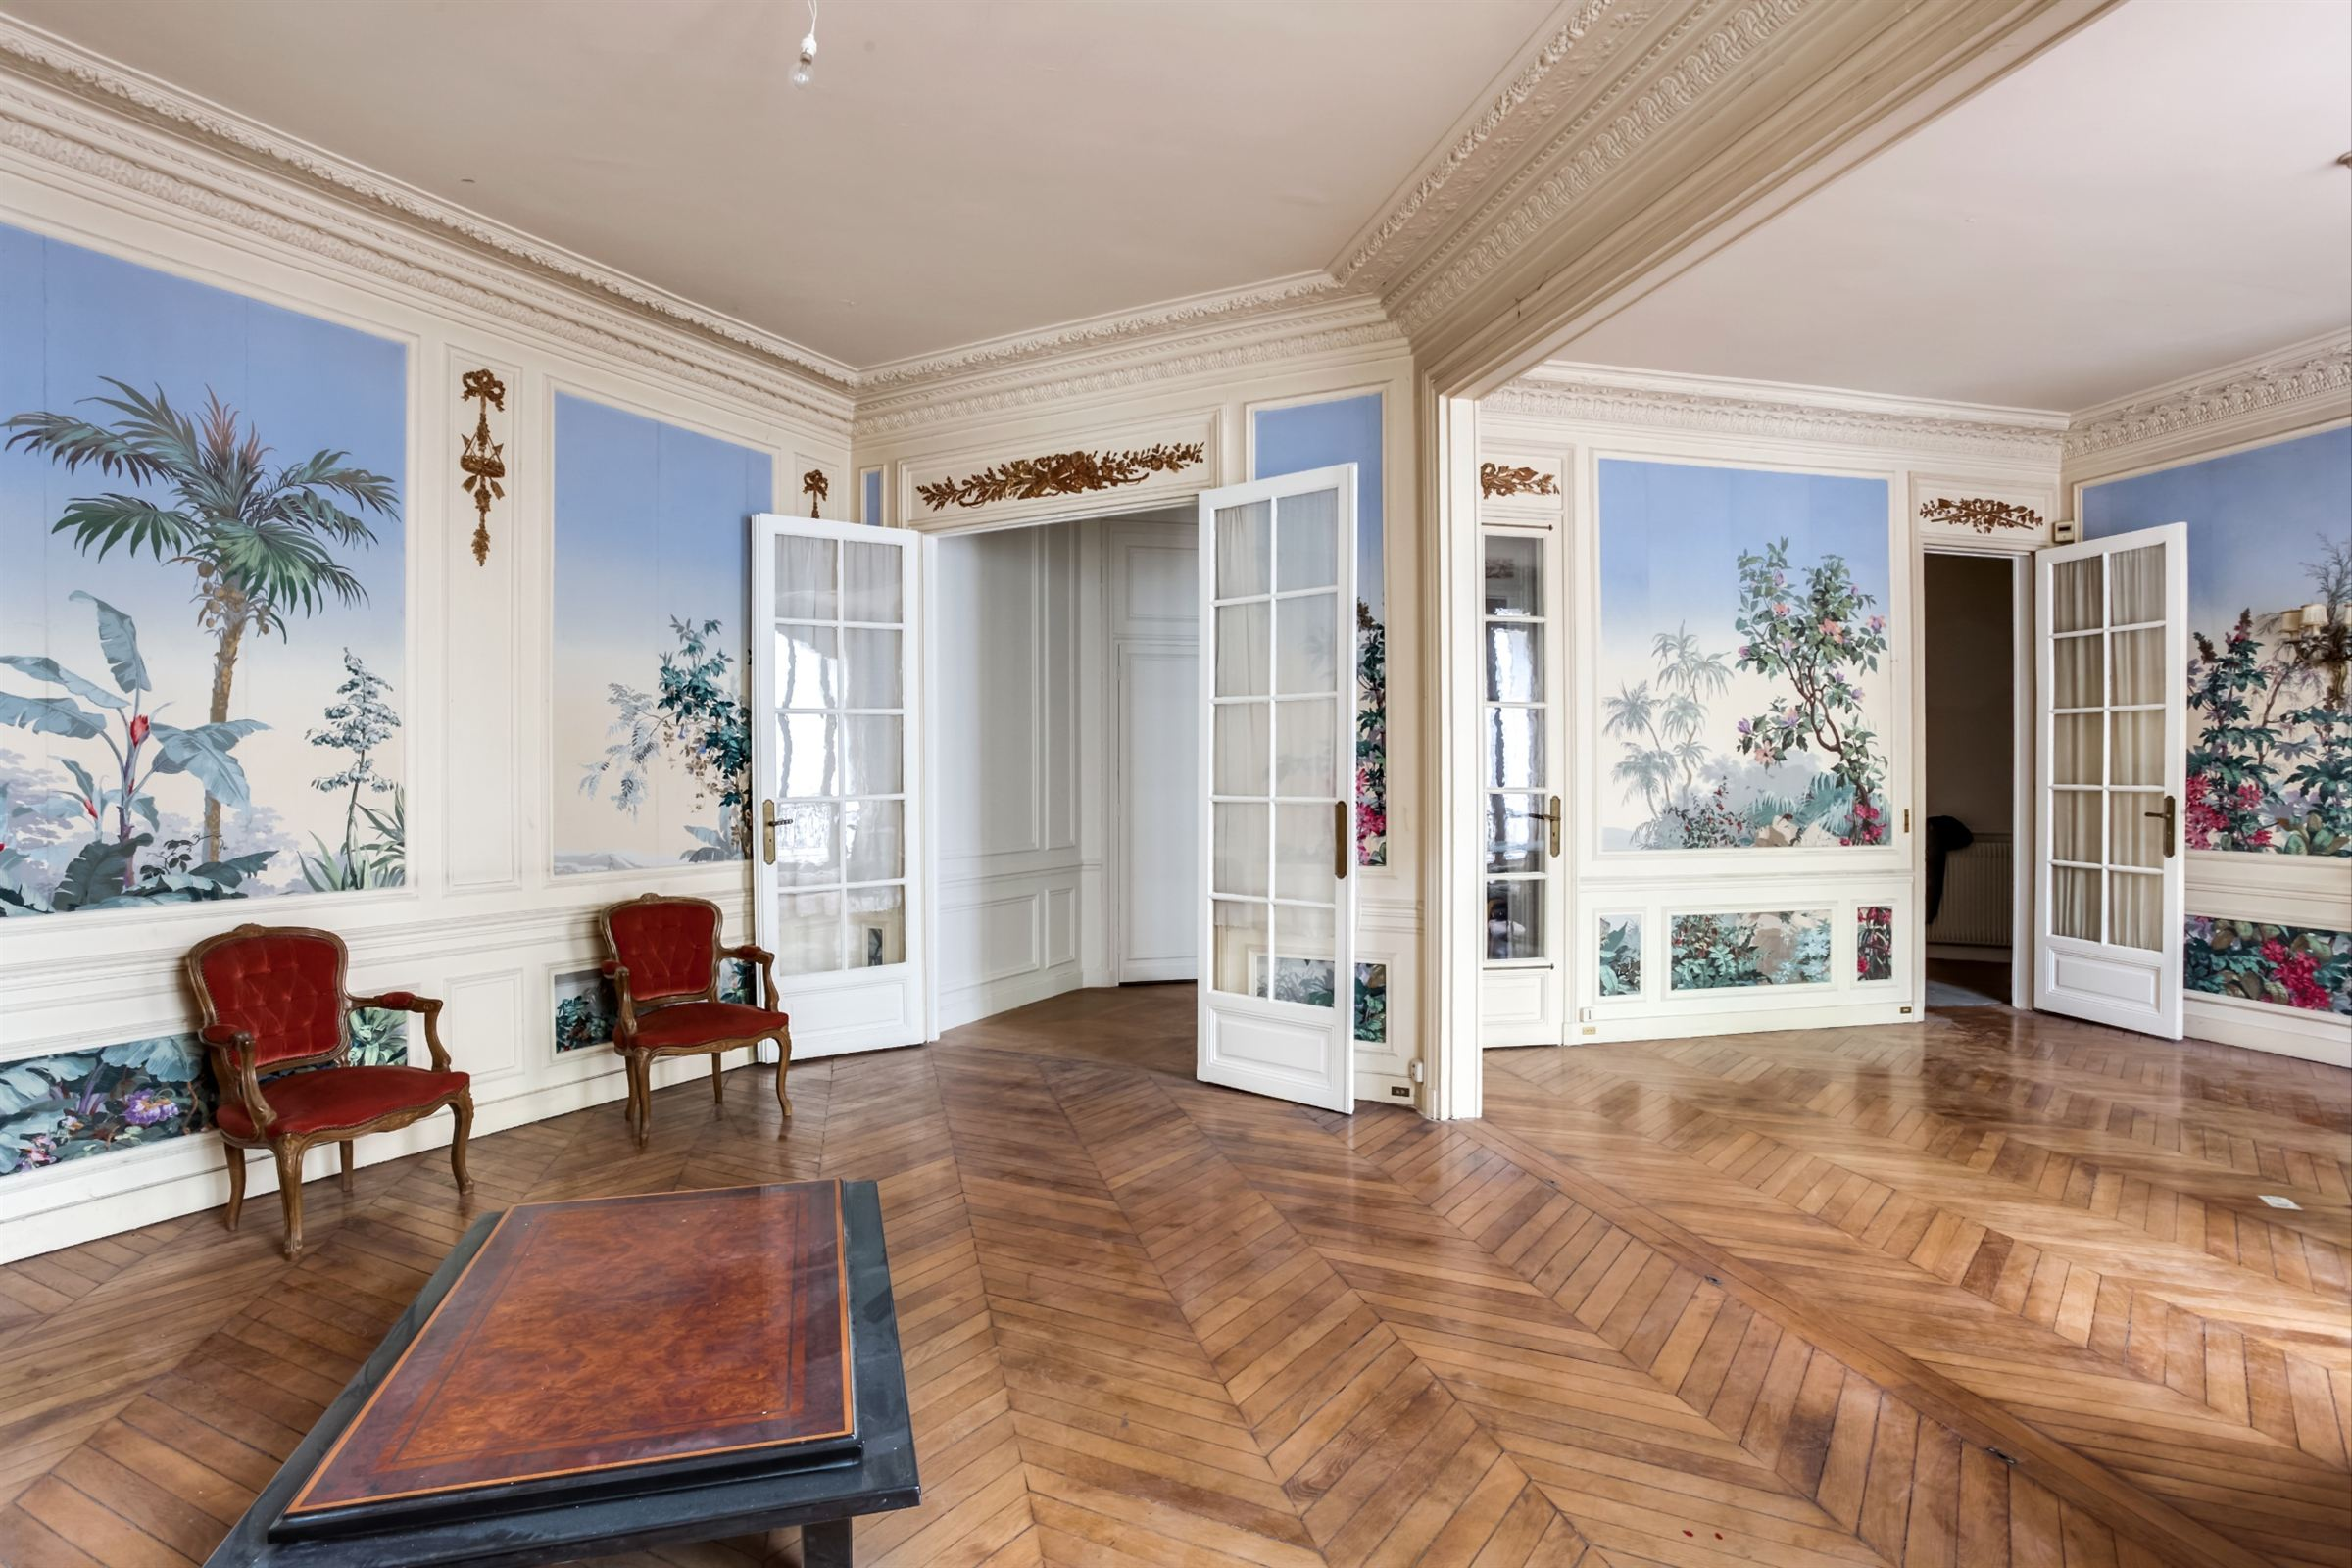 sales property at For sale apartment, sole agent in Paris 16th - Pompe - Henri Martin